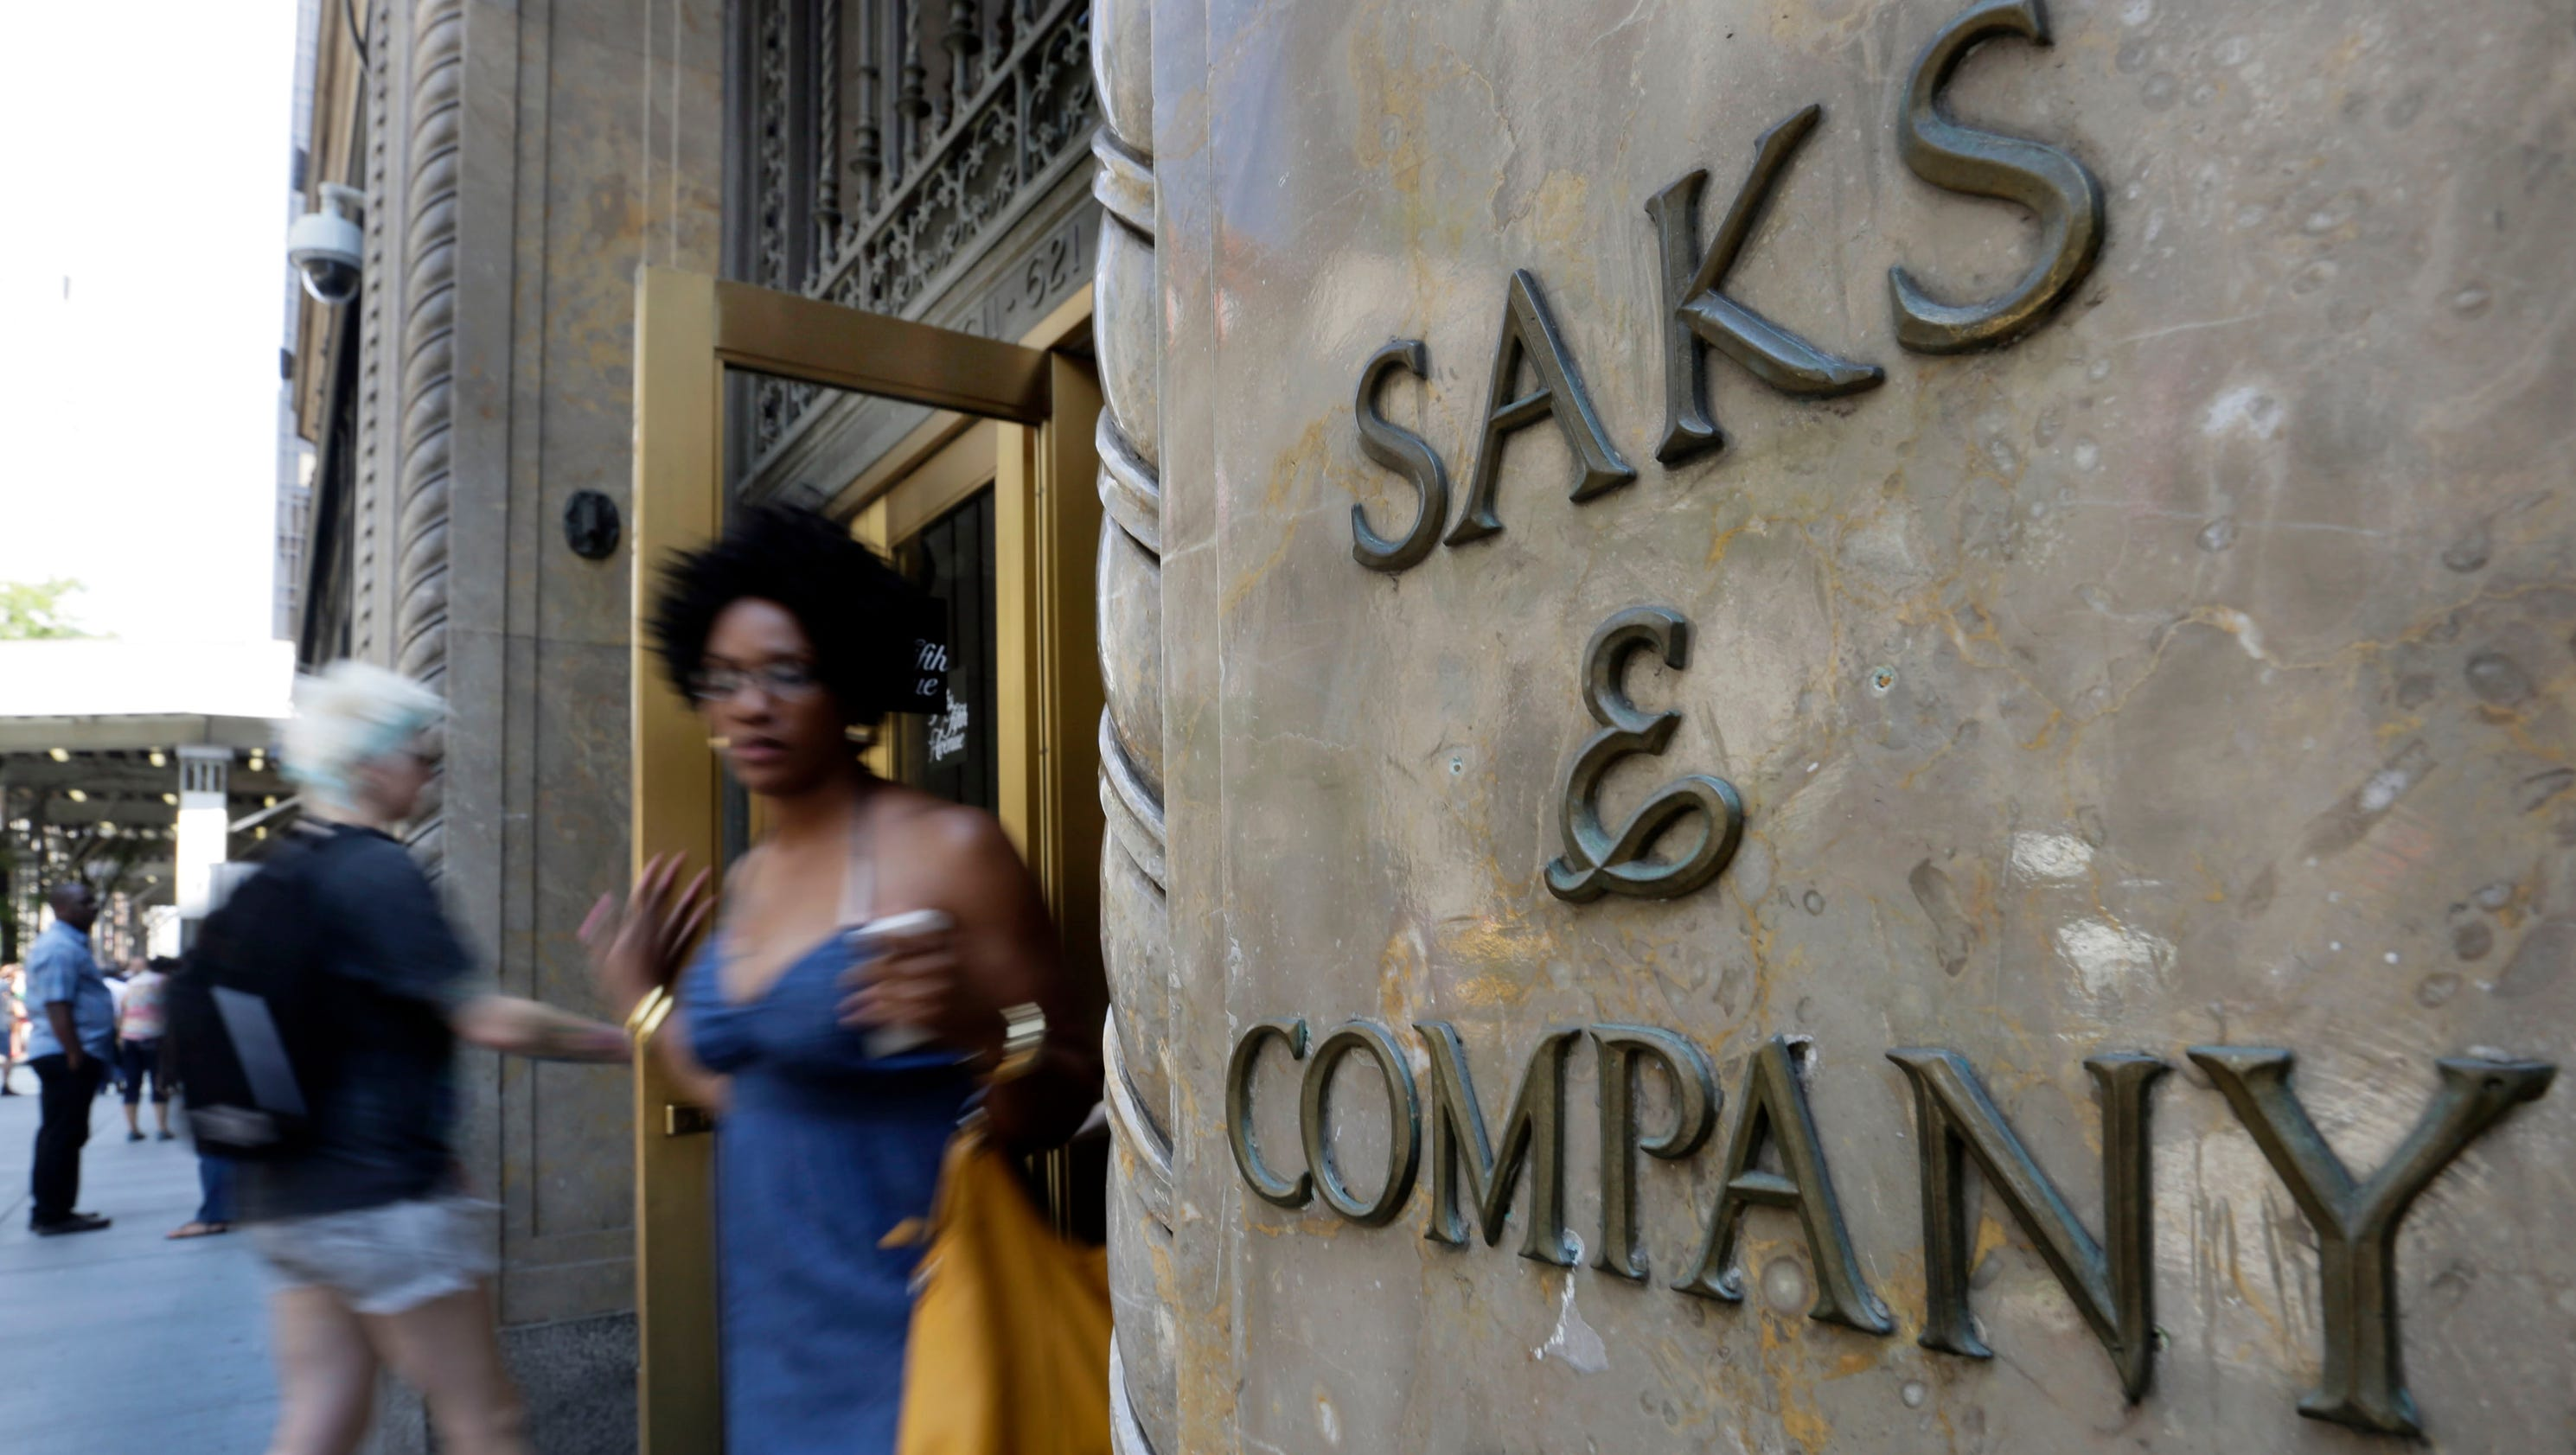 © , Saks Fifth Avenue; CA Transparency in Supply Chains Act; Privacy Policy Terms of Use Site Map Terms of Use Site Map.